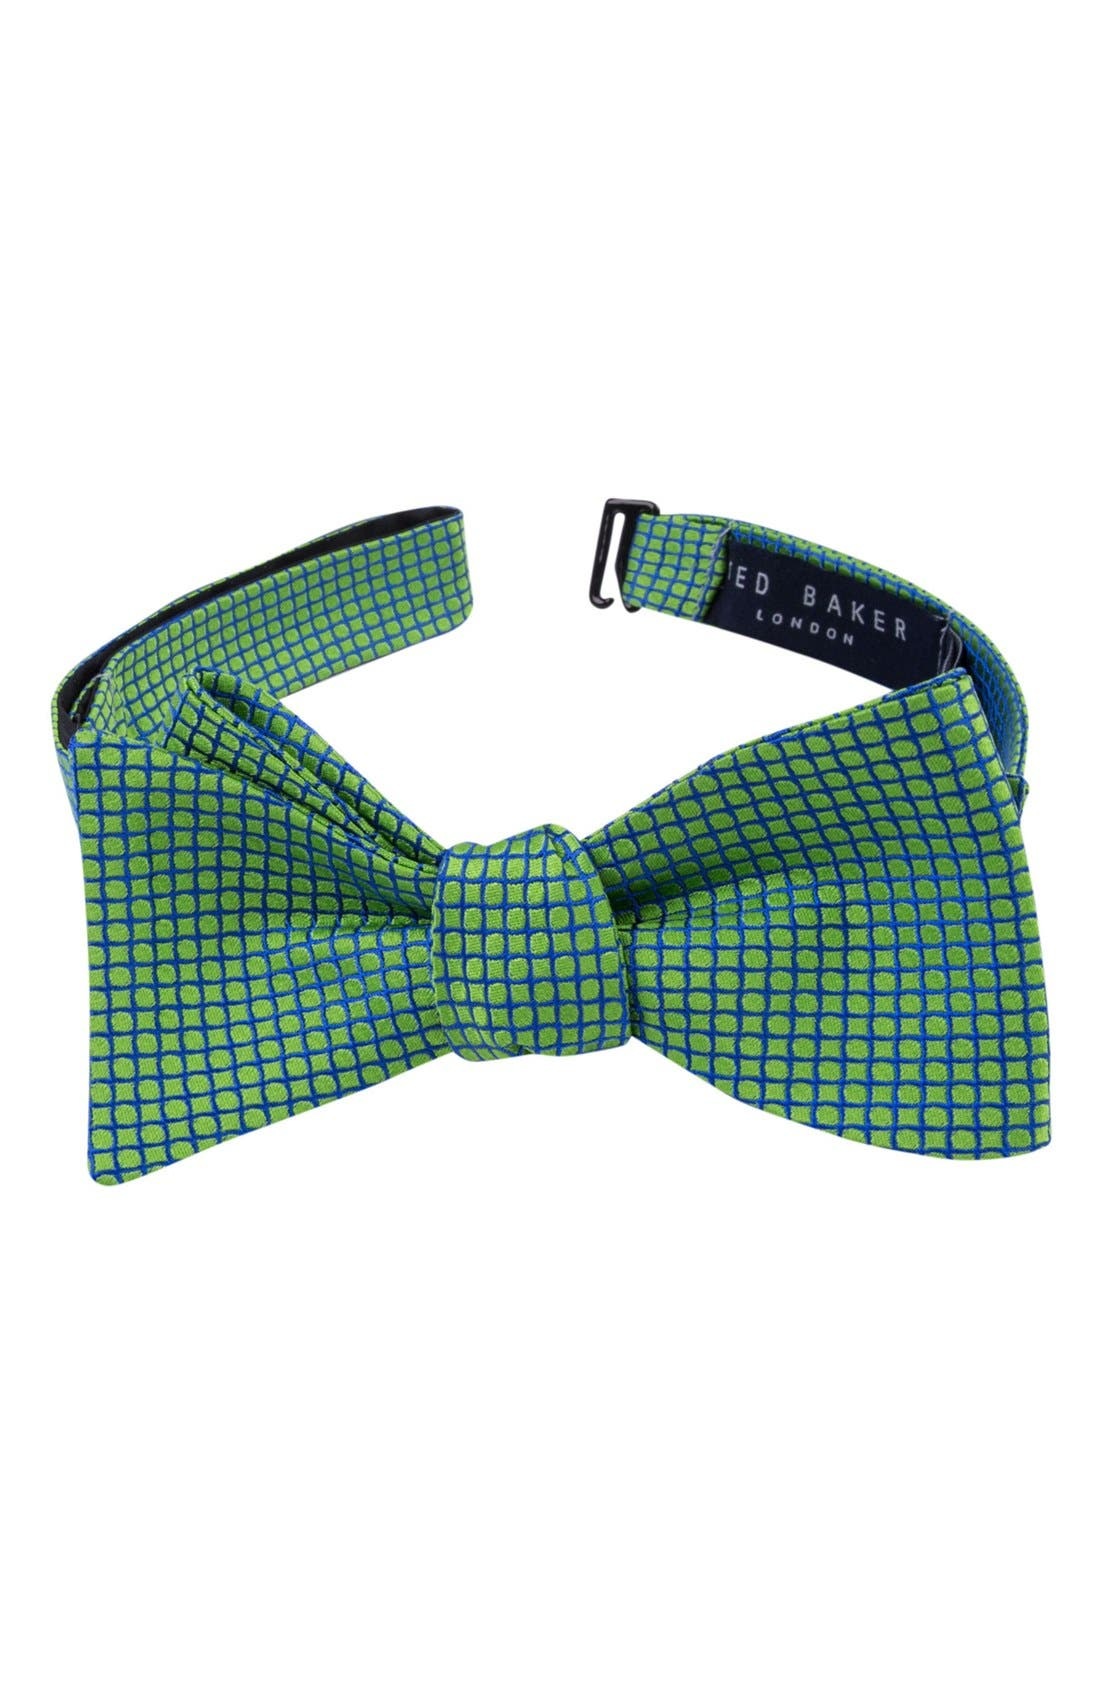 TED BAKER LONDON Geometric Silk Bow Tie